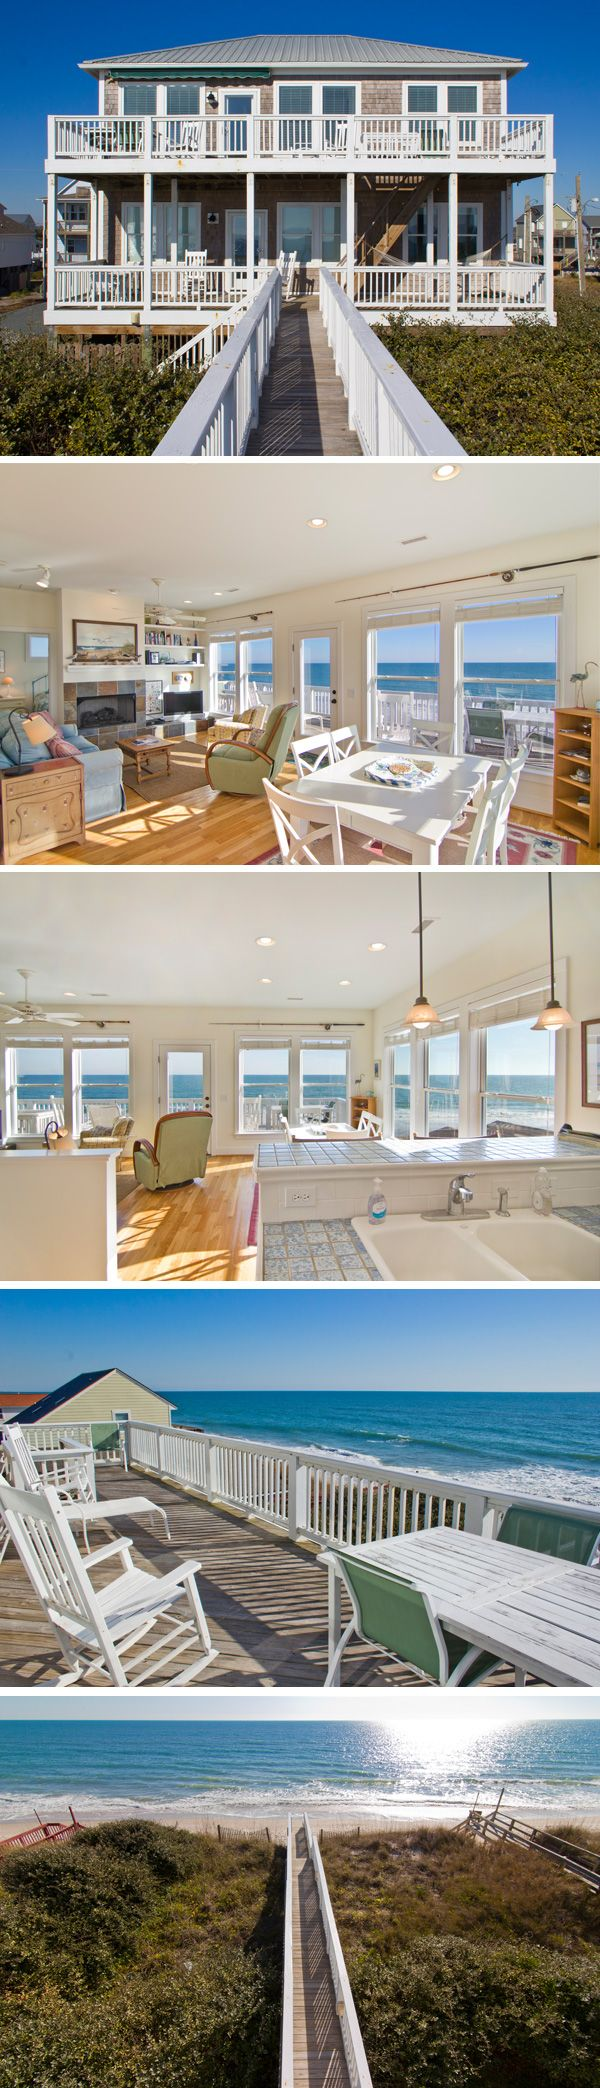 1110 North Shore Drive - Beautiful Oceanfront home on Topsail Island, North Carolina. #TopsailIsland